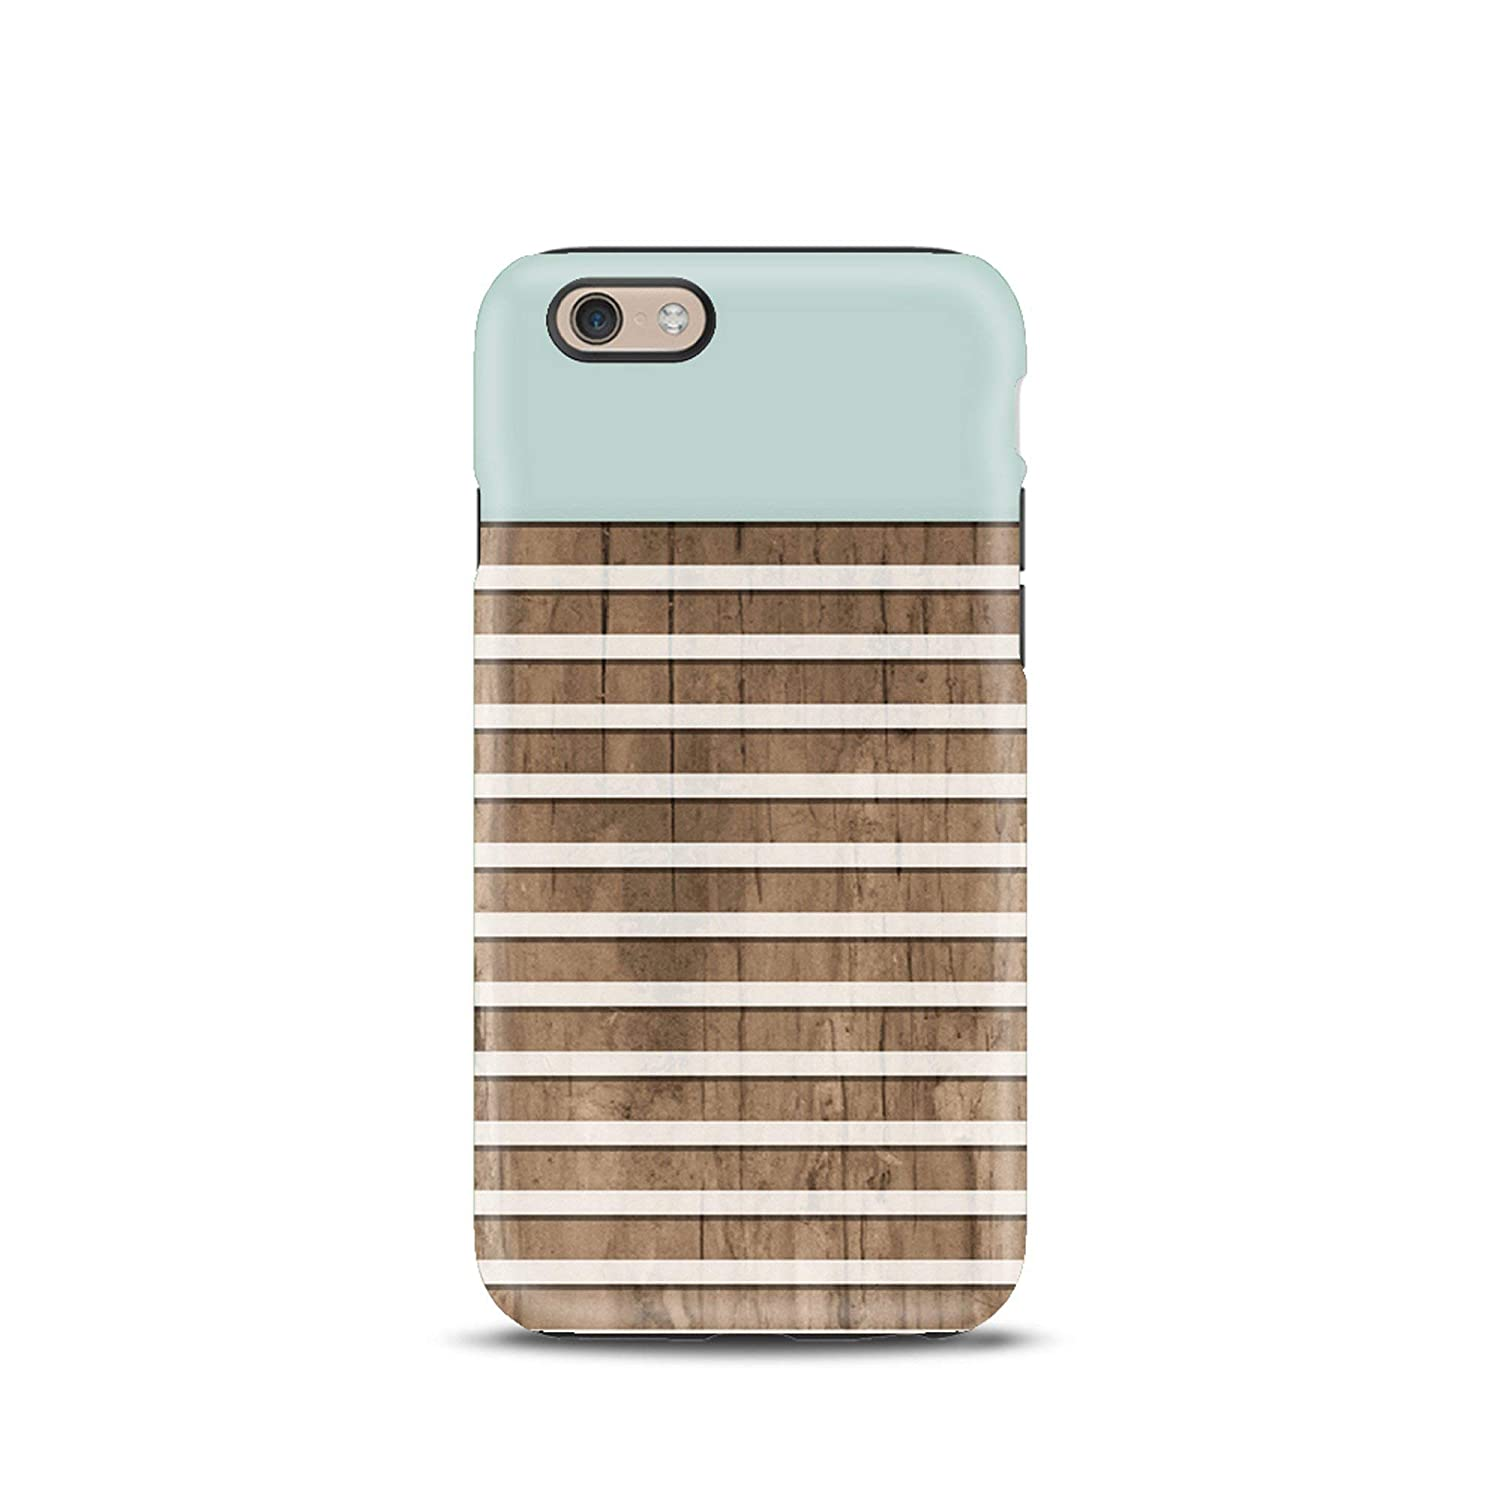 Celeste Righe Geometrico cover case custodia per iPhone 5, 5s, 6, 6s, 7, 7 plus, 8, 8 plus, X, XS, per Galaxy S6, S7, S8